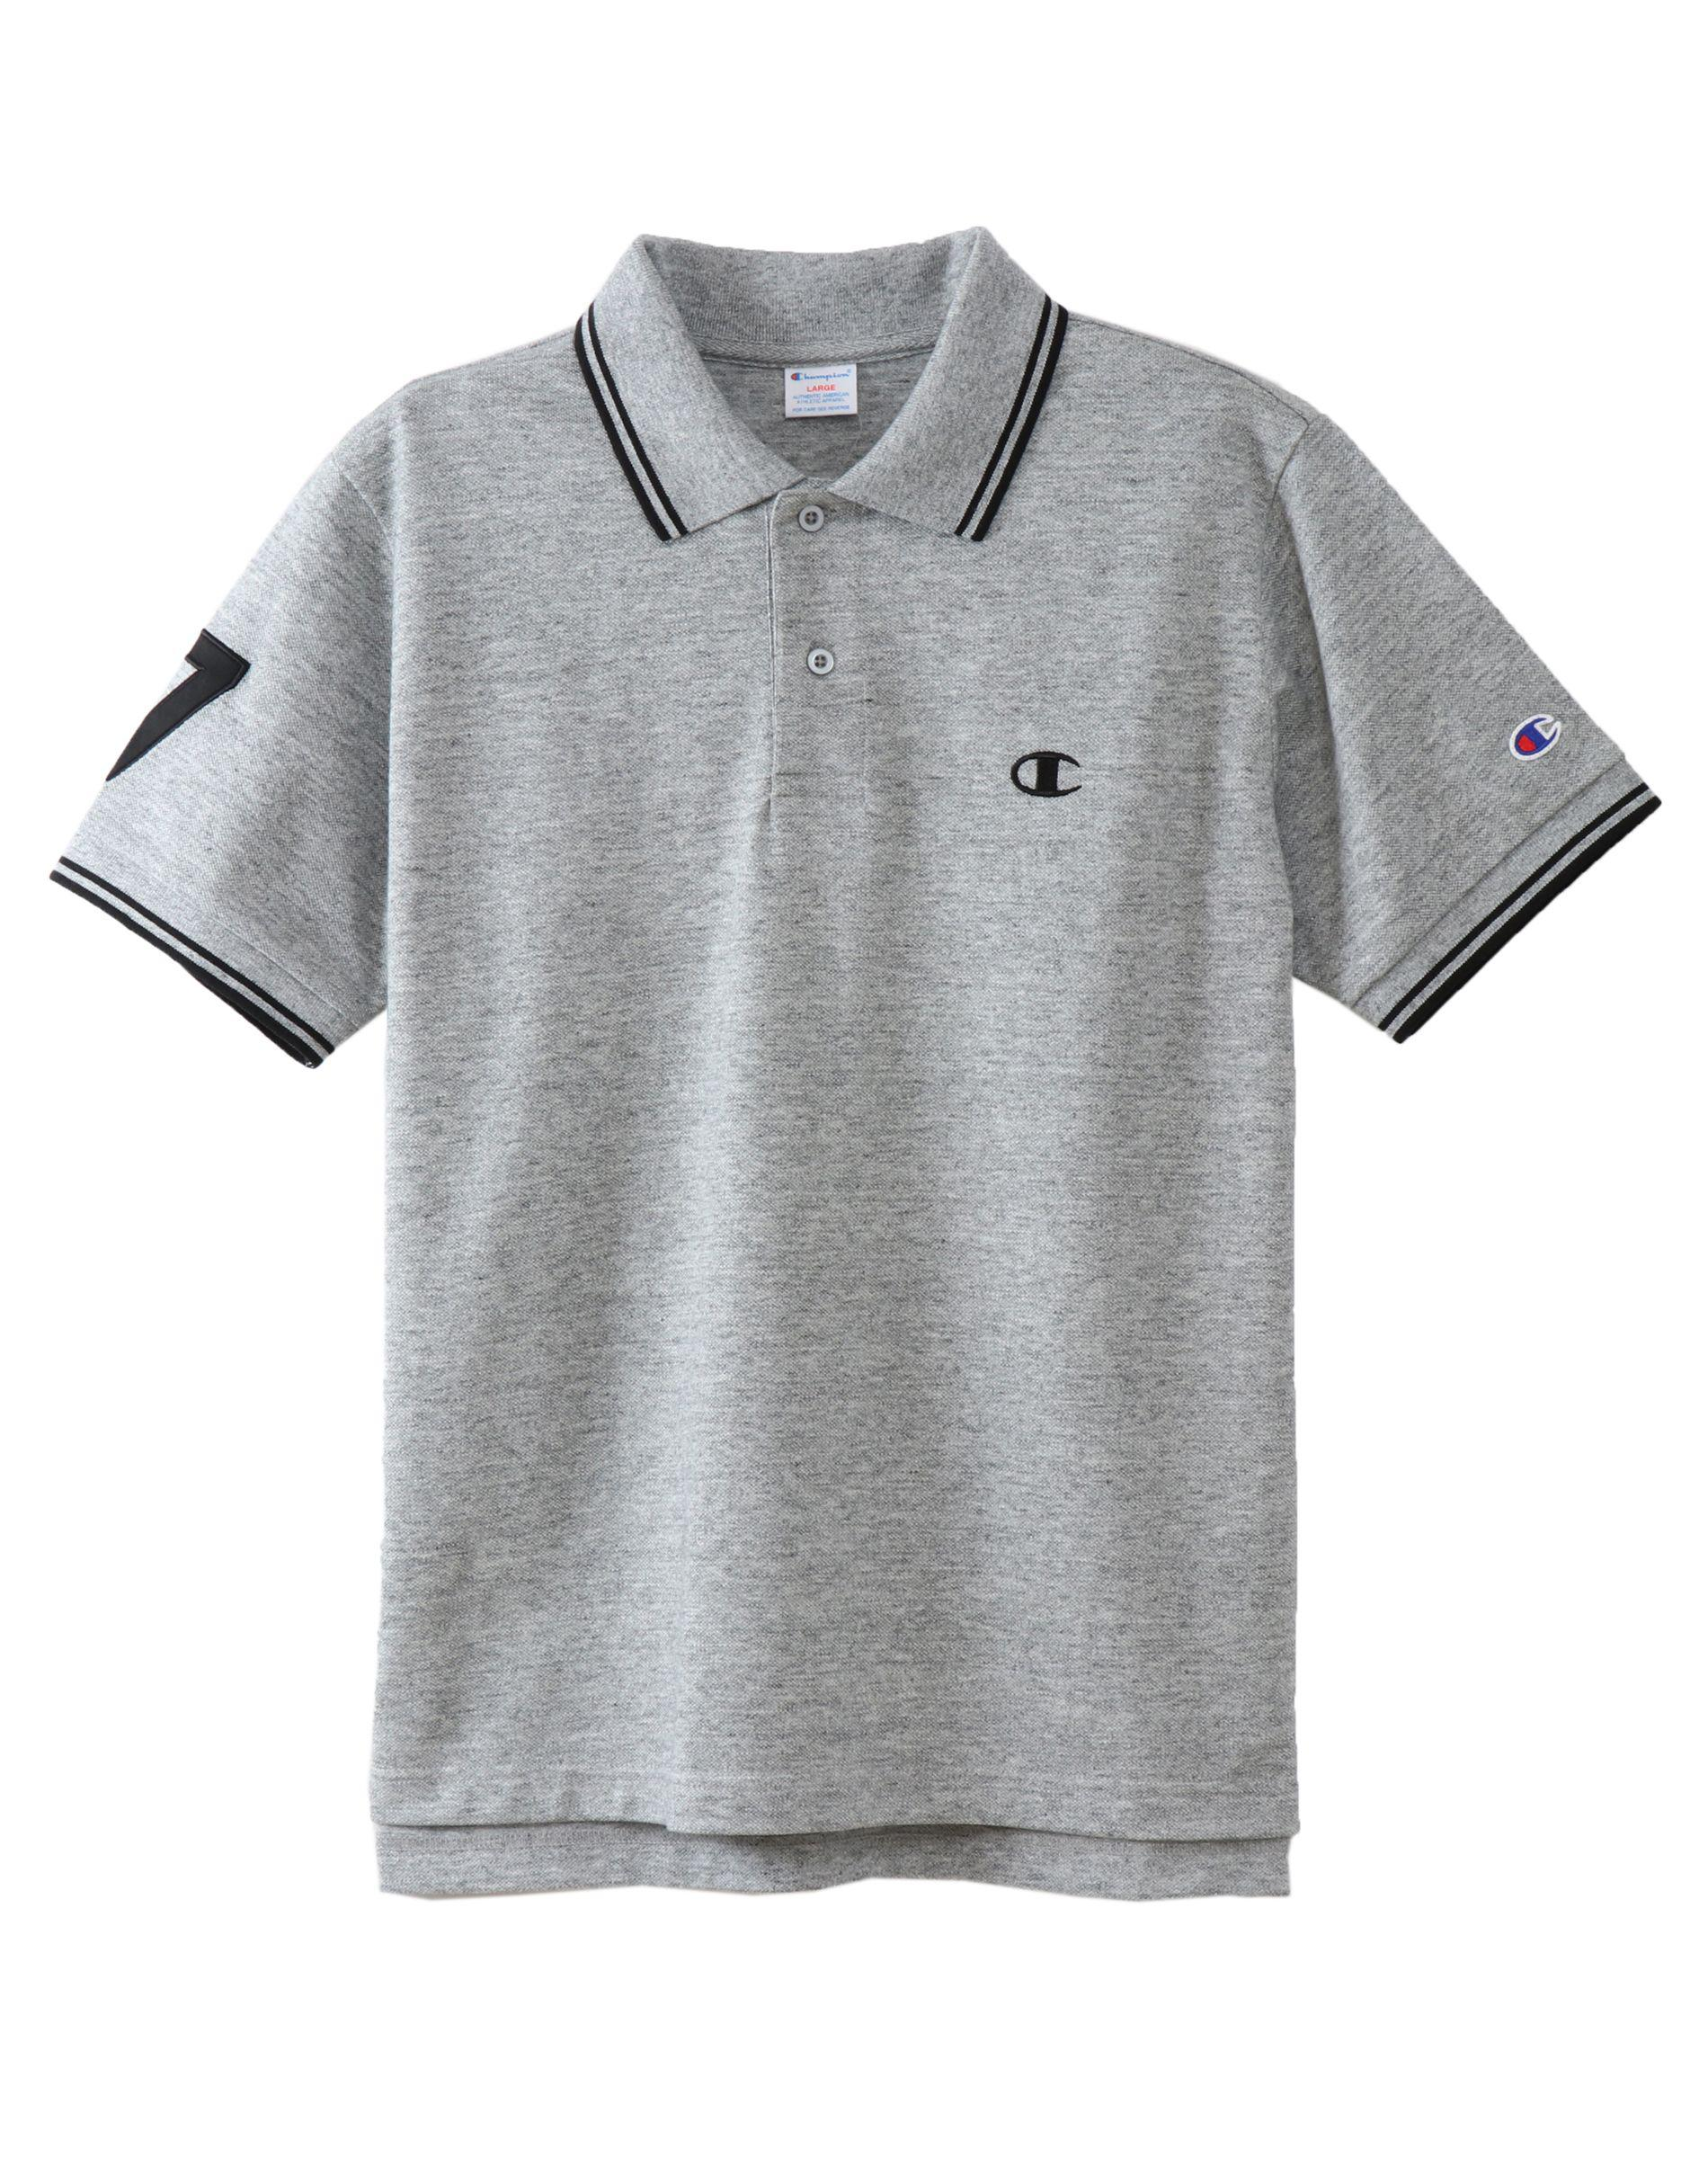 dff121a2 Champion Japan Premium Campus Polo Shirt in Gray for Men - Lyst